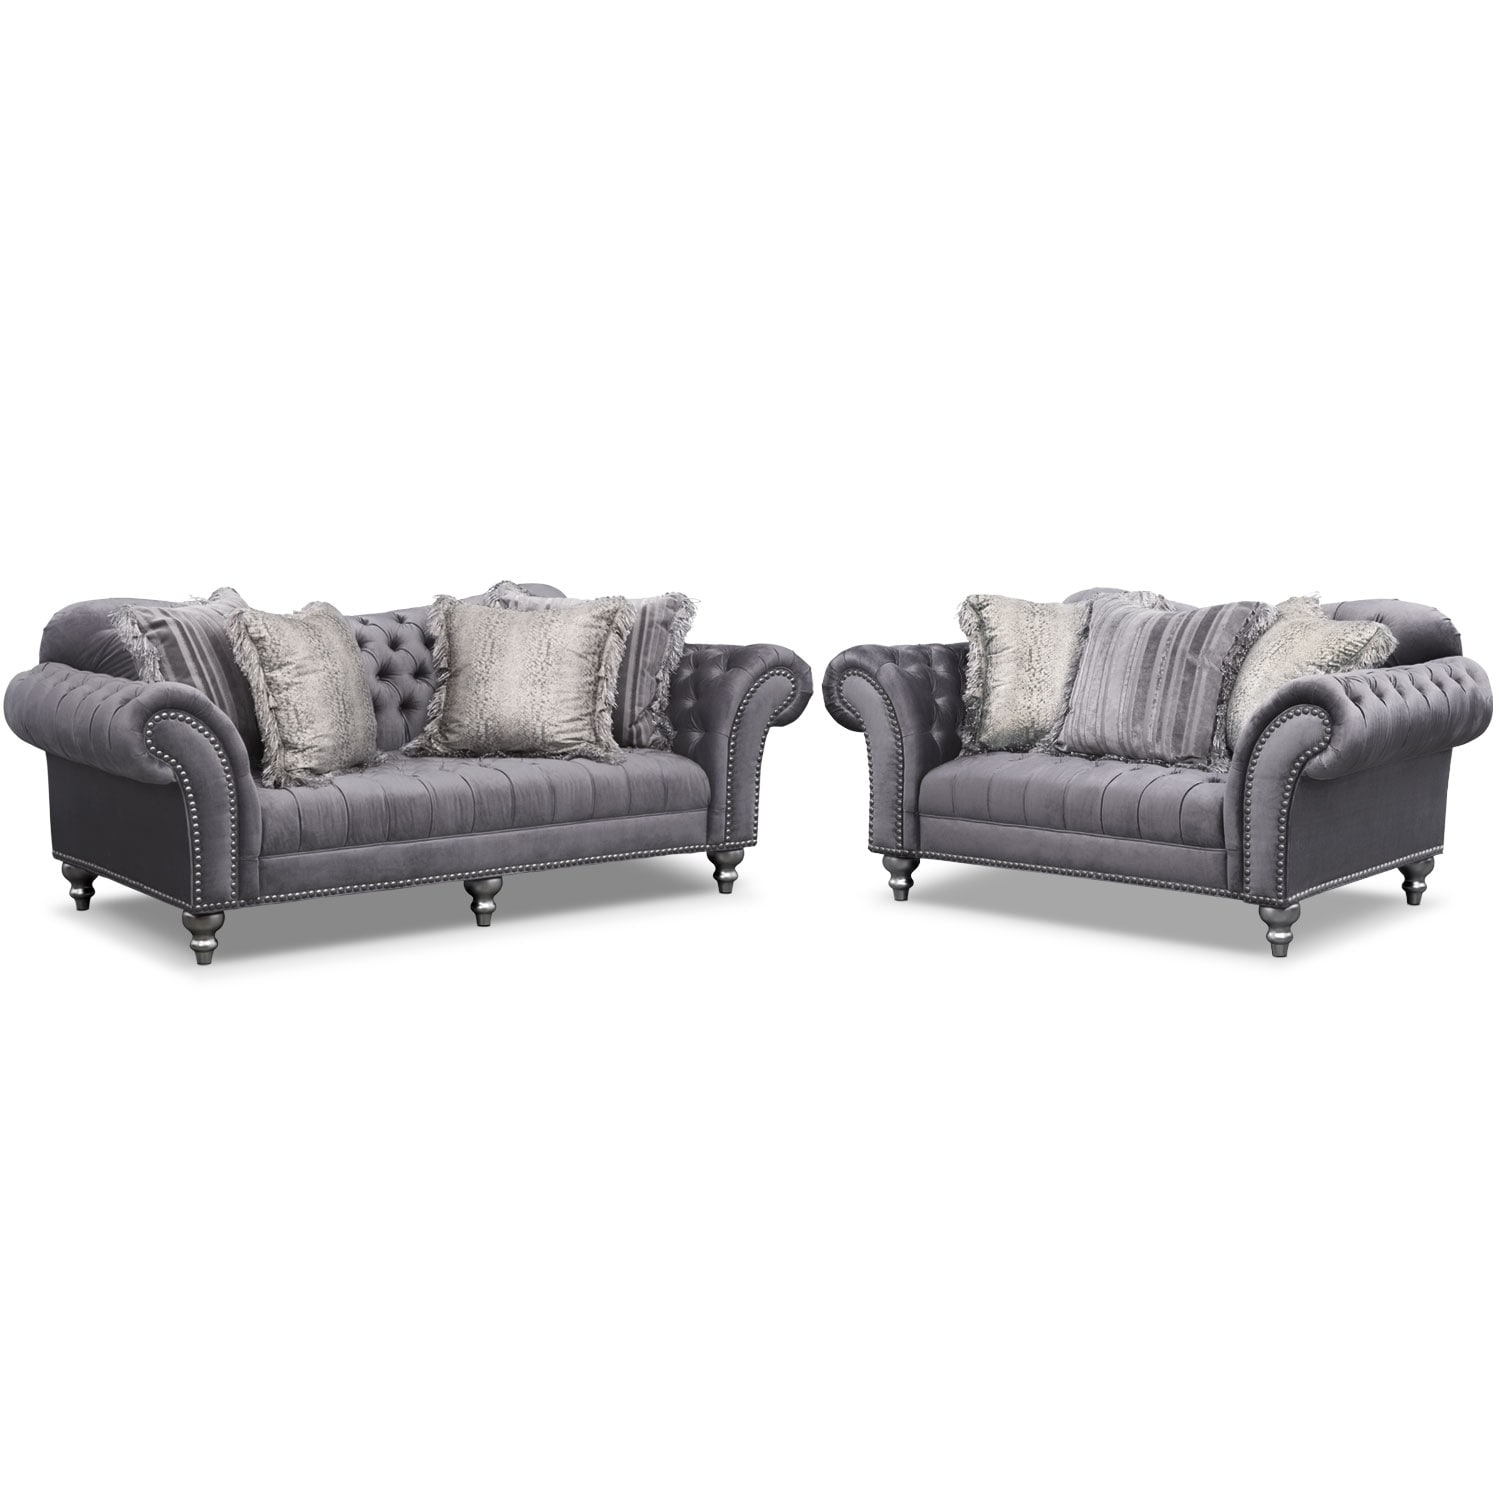 Brittney Sofa and Loveseat Set - Gray